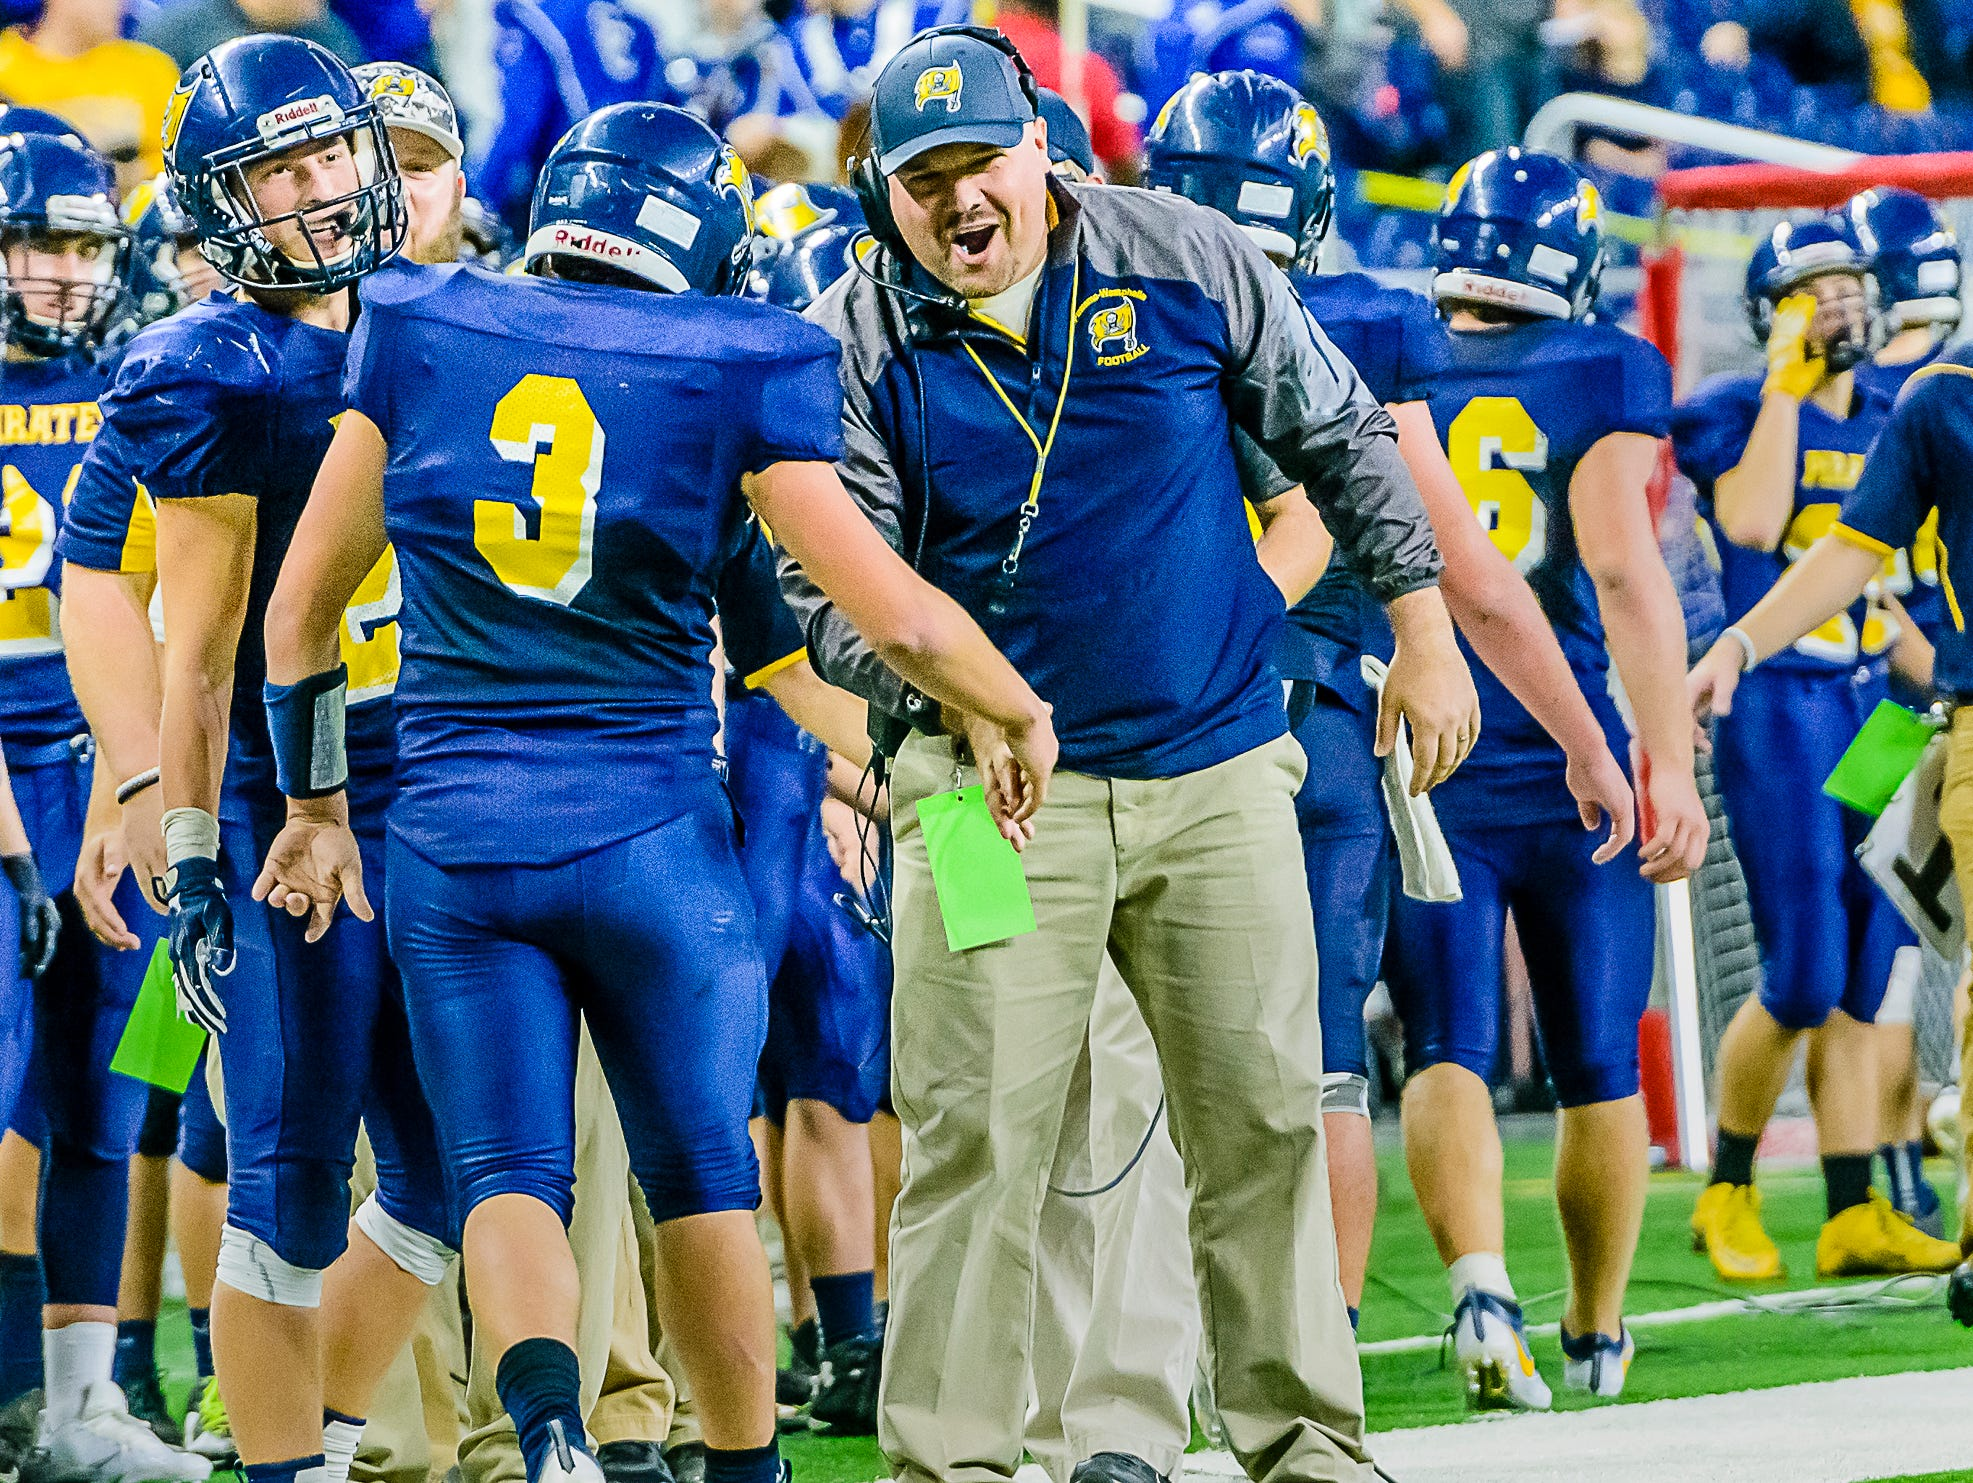 Pewamo-Westphalia Head Football Coach Jeremy Miller ,right, congratulates quarterback Ryan Smith after he scored on a keeper around the right end to put the Pirates up 20-0 with 34 seconds remaining in the 3rd quarter.